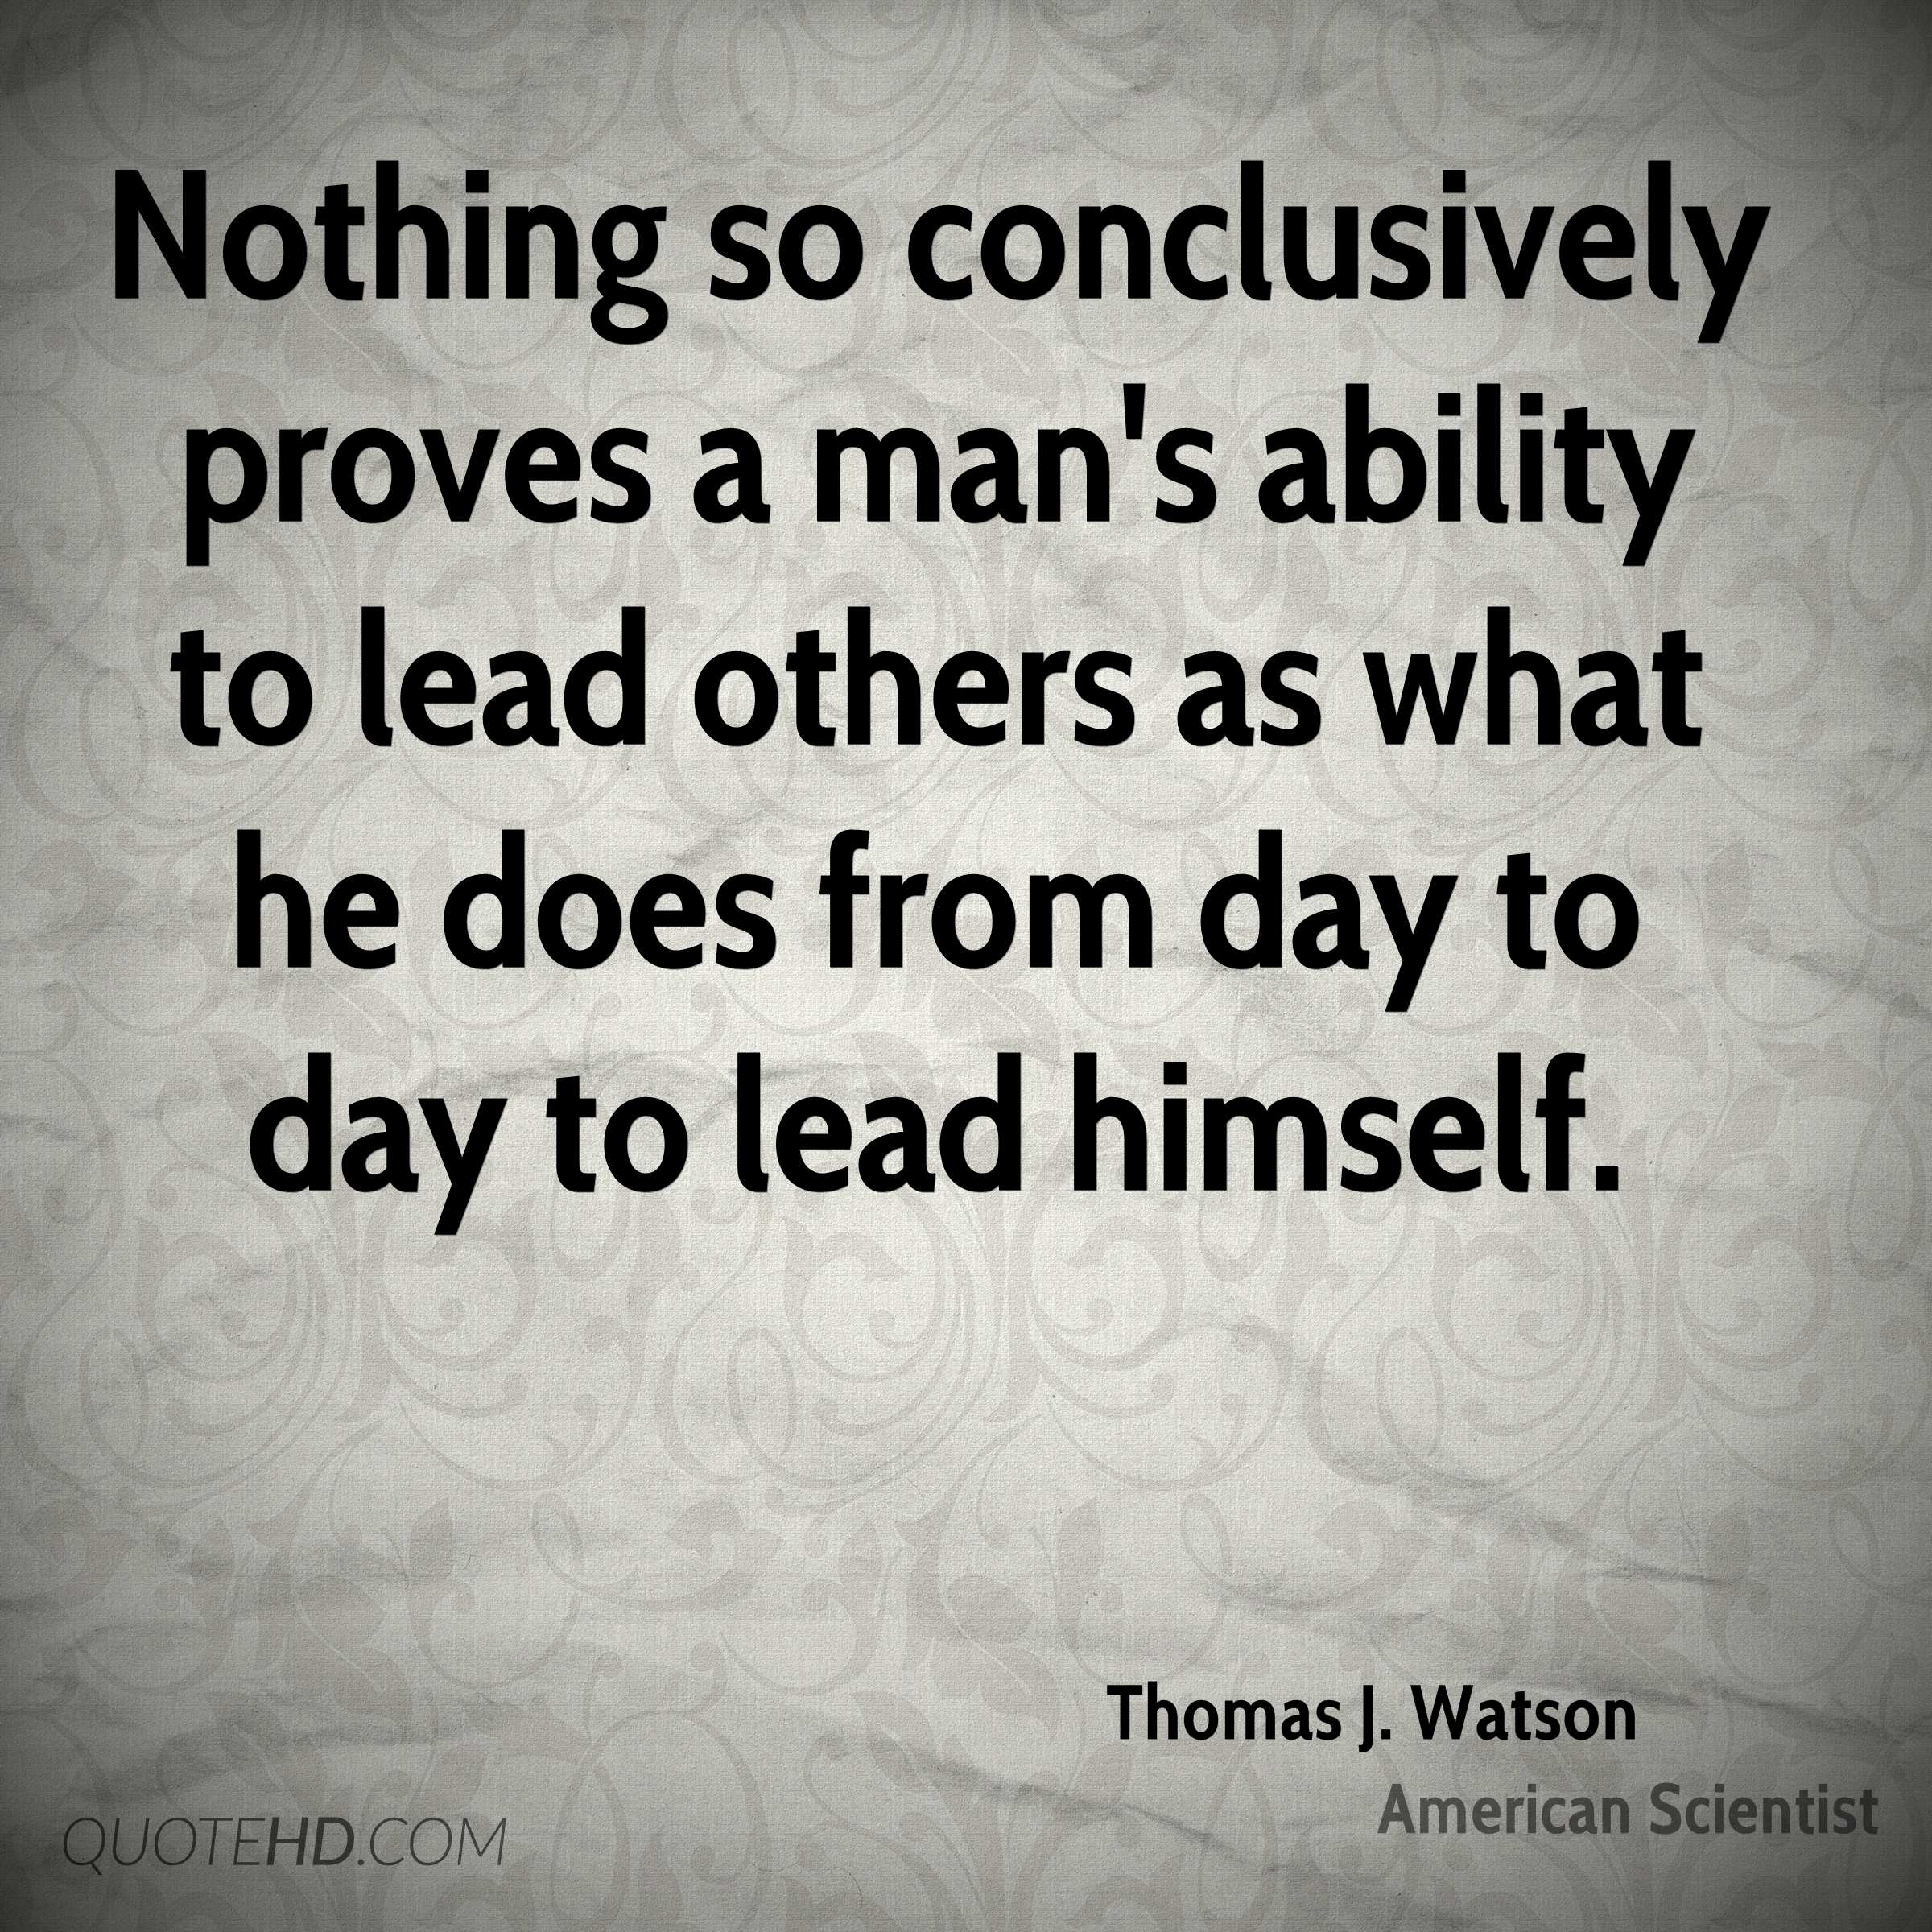 Nothing so conclusively proves a man's ability to lead others as what he does from day to day to lead himself.